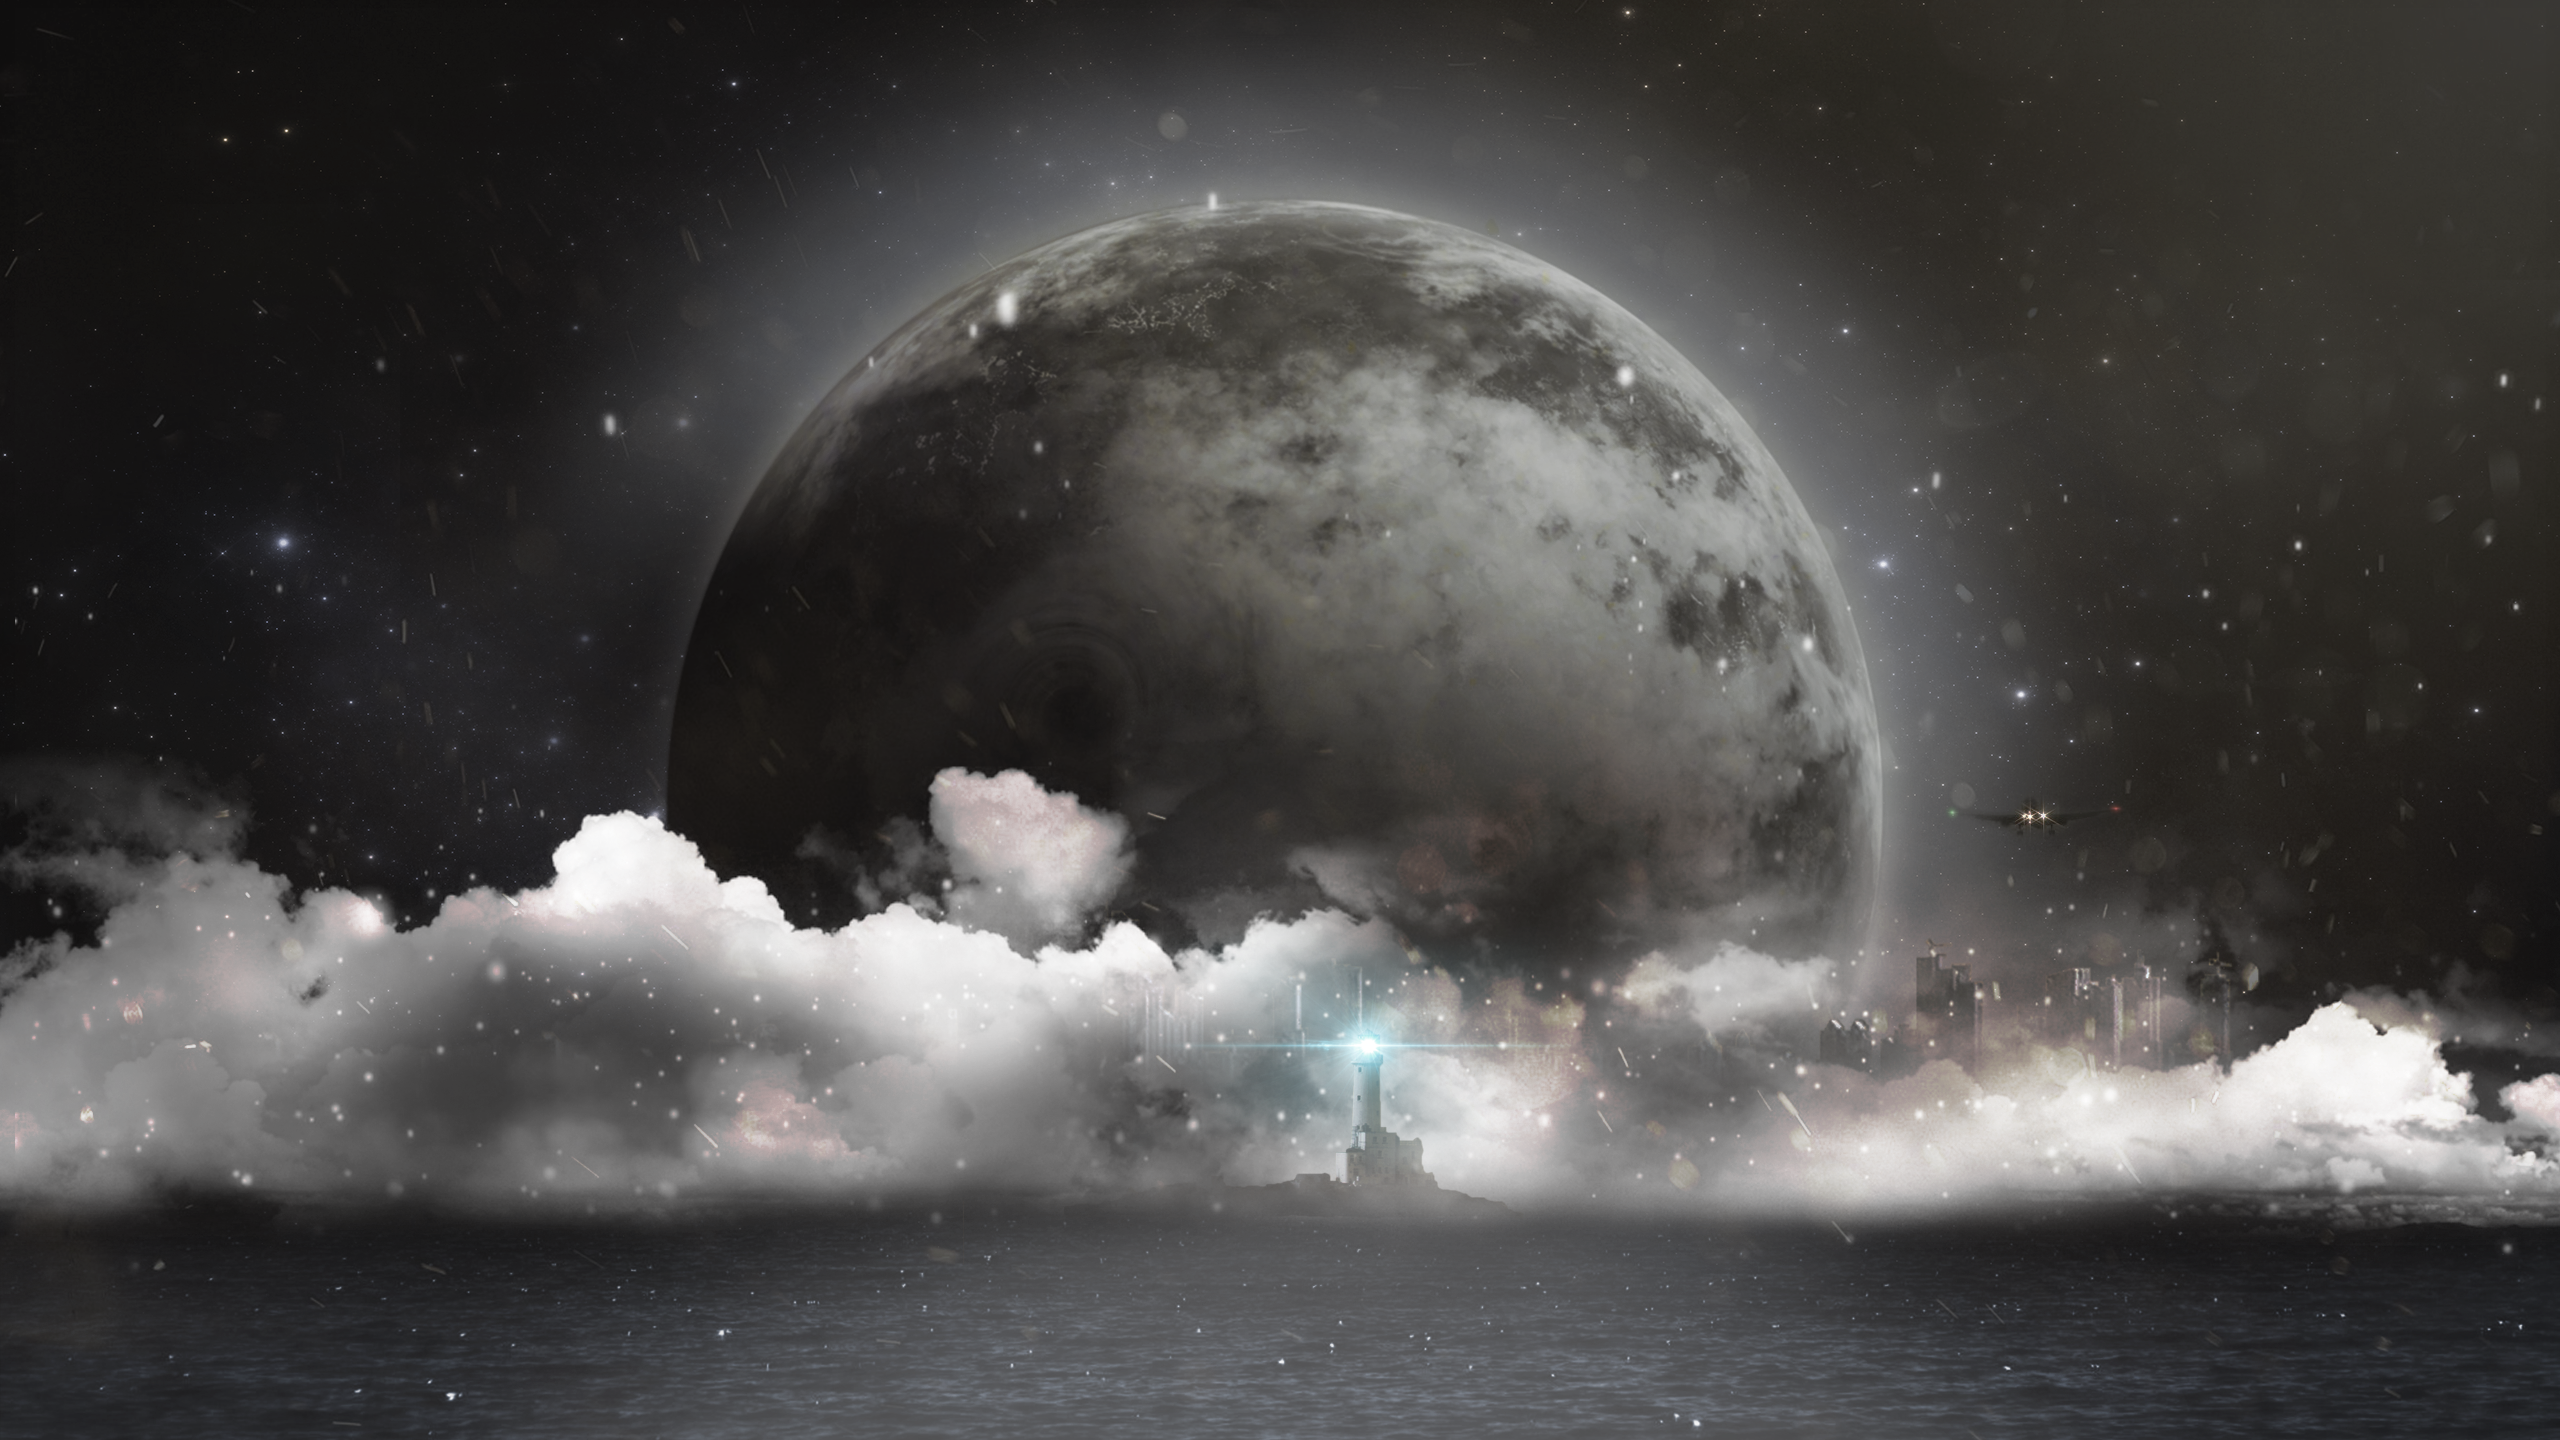 General 2560x1440 city lighthouse airplane night clouds Moon